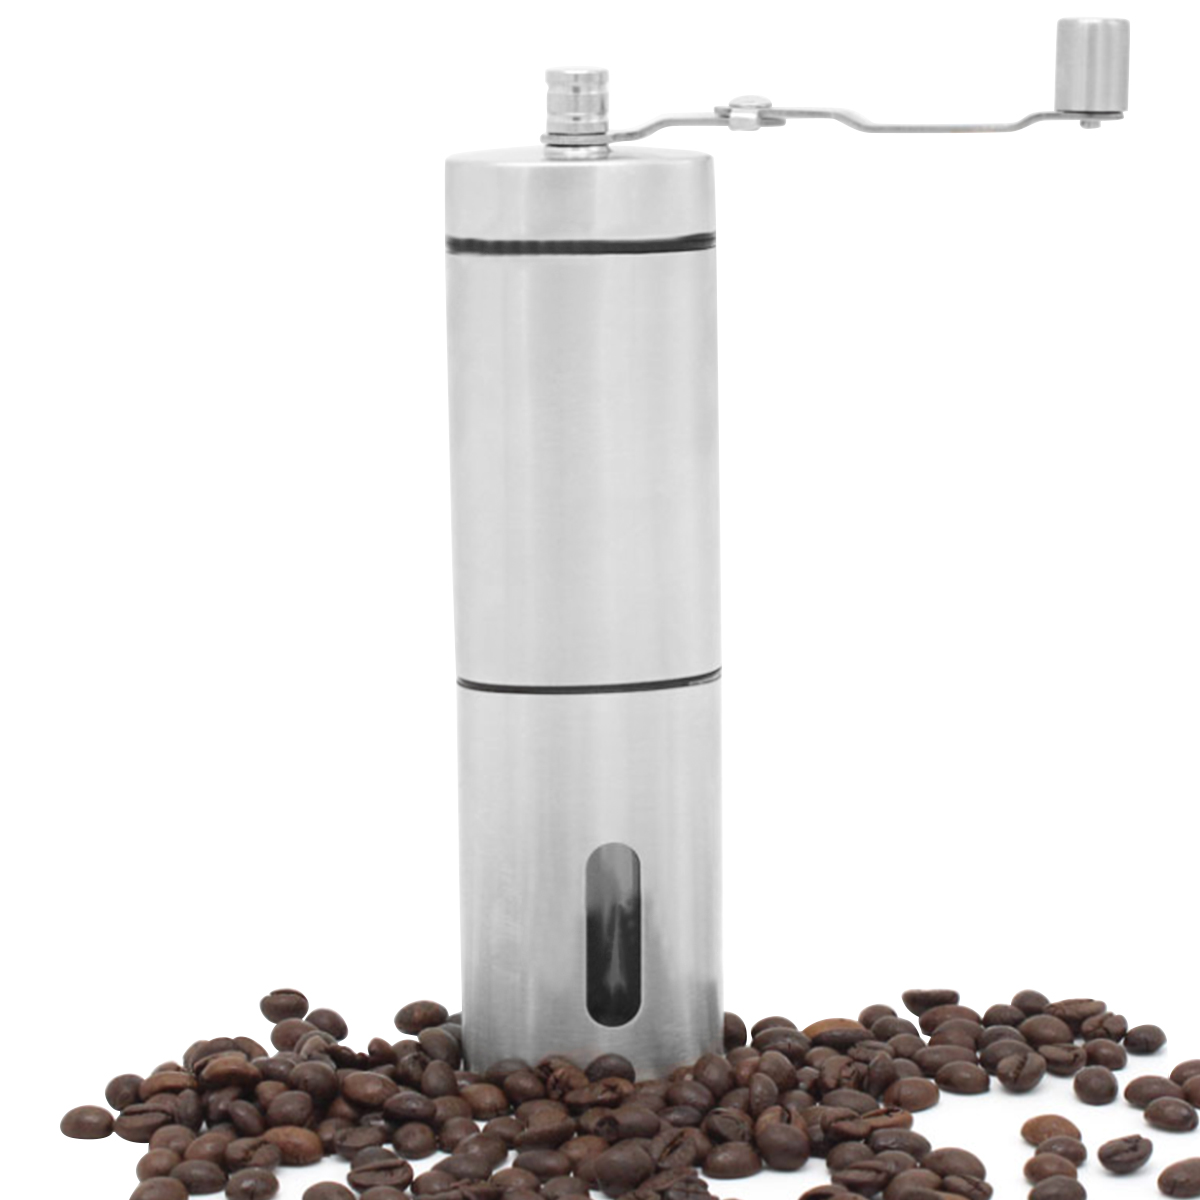 Manual Coffee Grinder Coffee Maker Ceramics Core 304 Stainless Steel Hand Burr Mill Grinder Ceramic Corn Coffee Grinding Machine|Manual Coffee Grinders| |  - title=